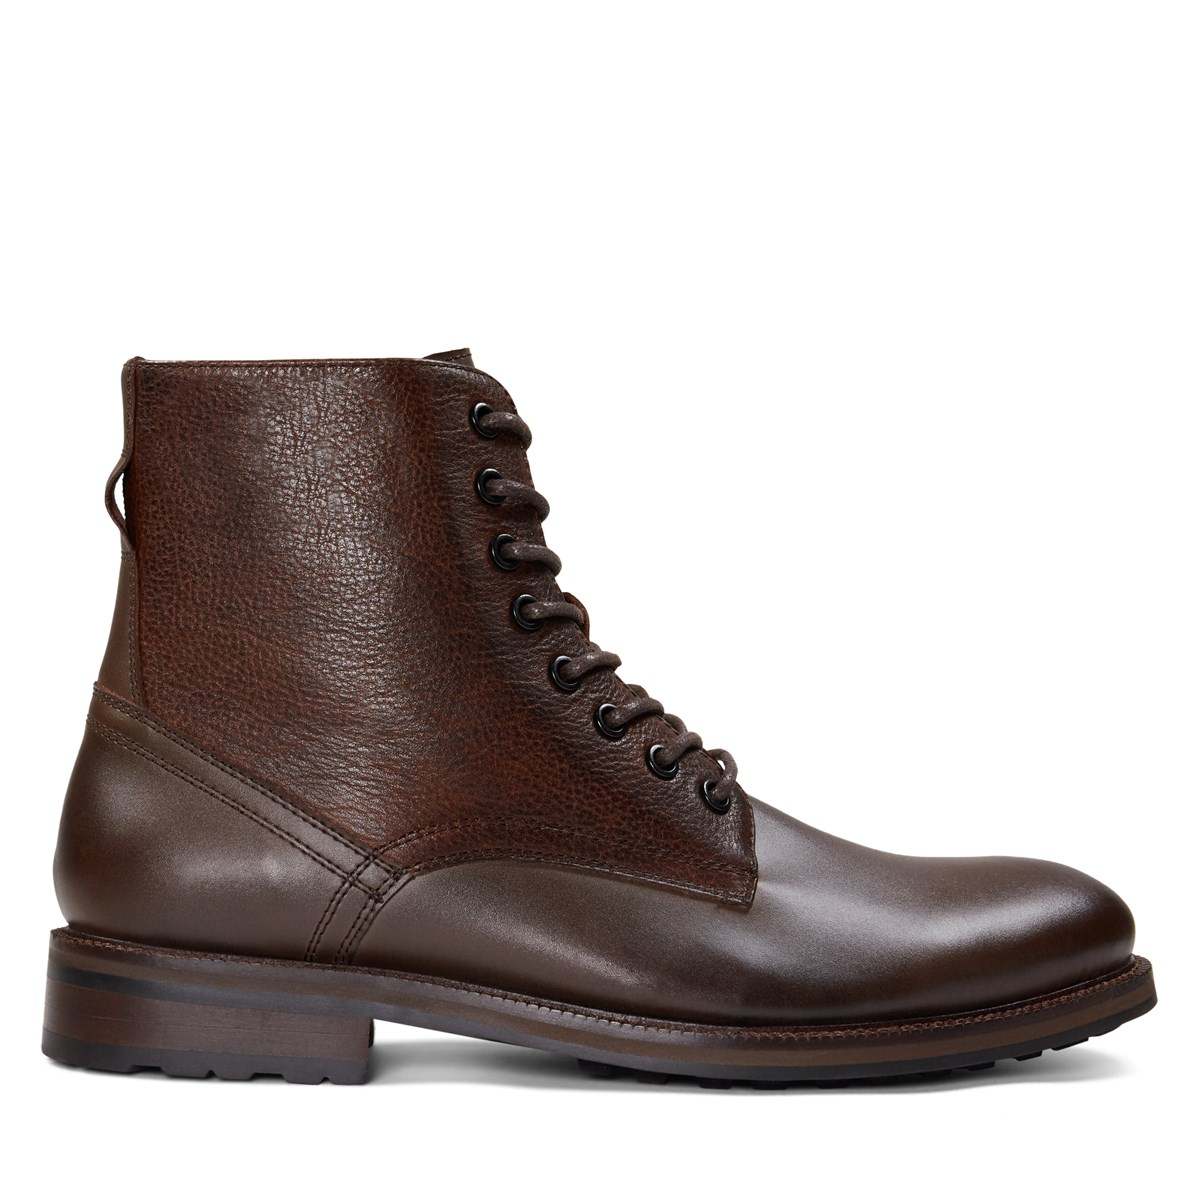 Men's Matteo Lace-Up Boots in Brown